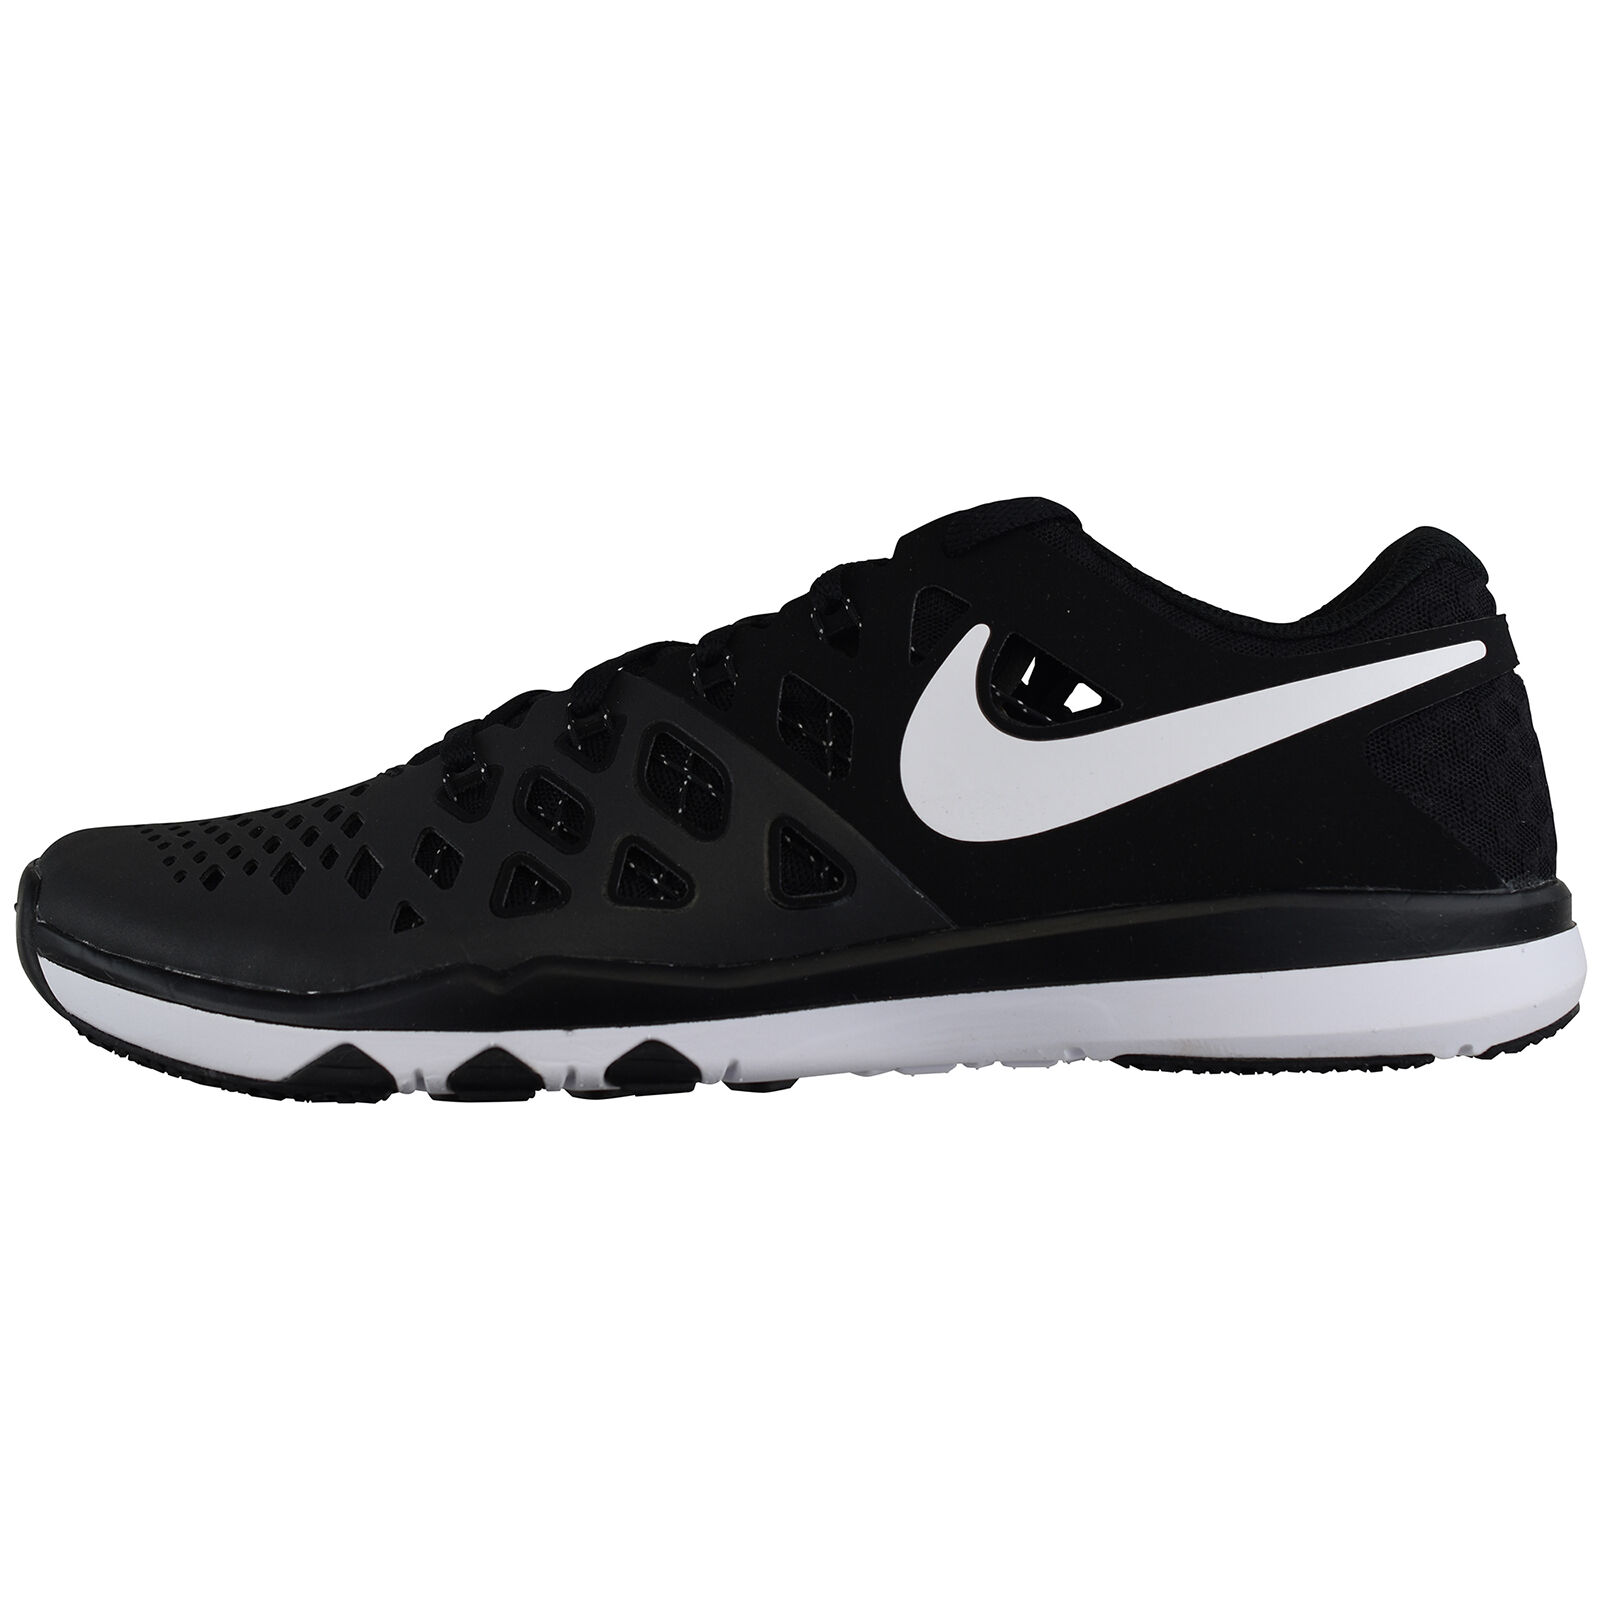 separation shoes 3ccc8 56f86 NIKE NIKE NIKE Train Speed 4 843937-010 Jogging Course Loisir Chaussures de  course baskets 5e1b1d